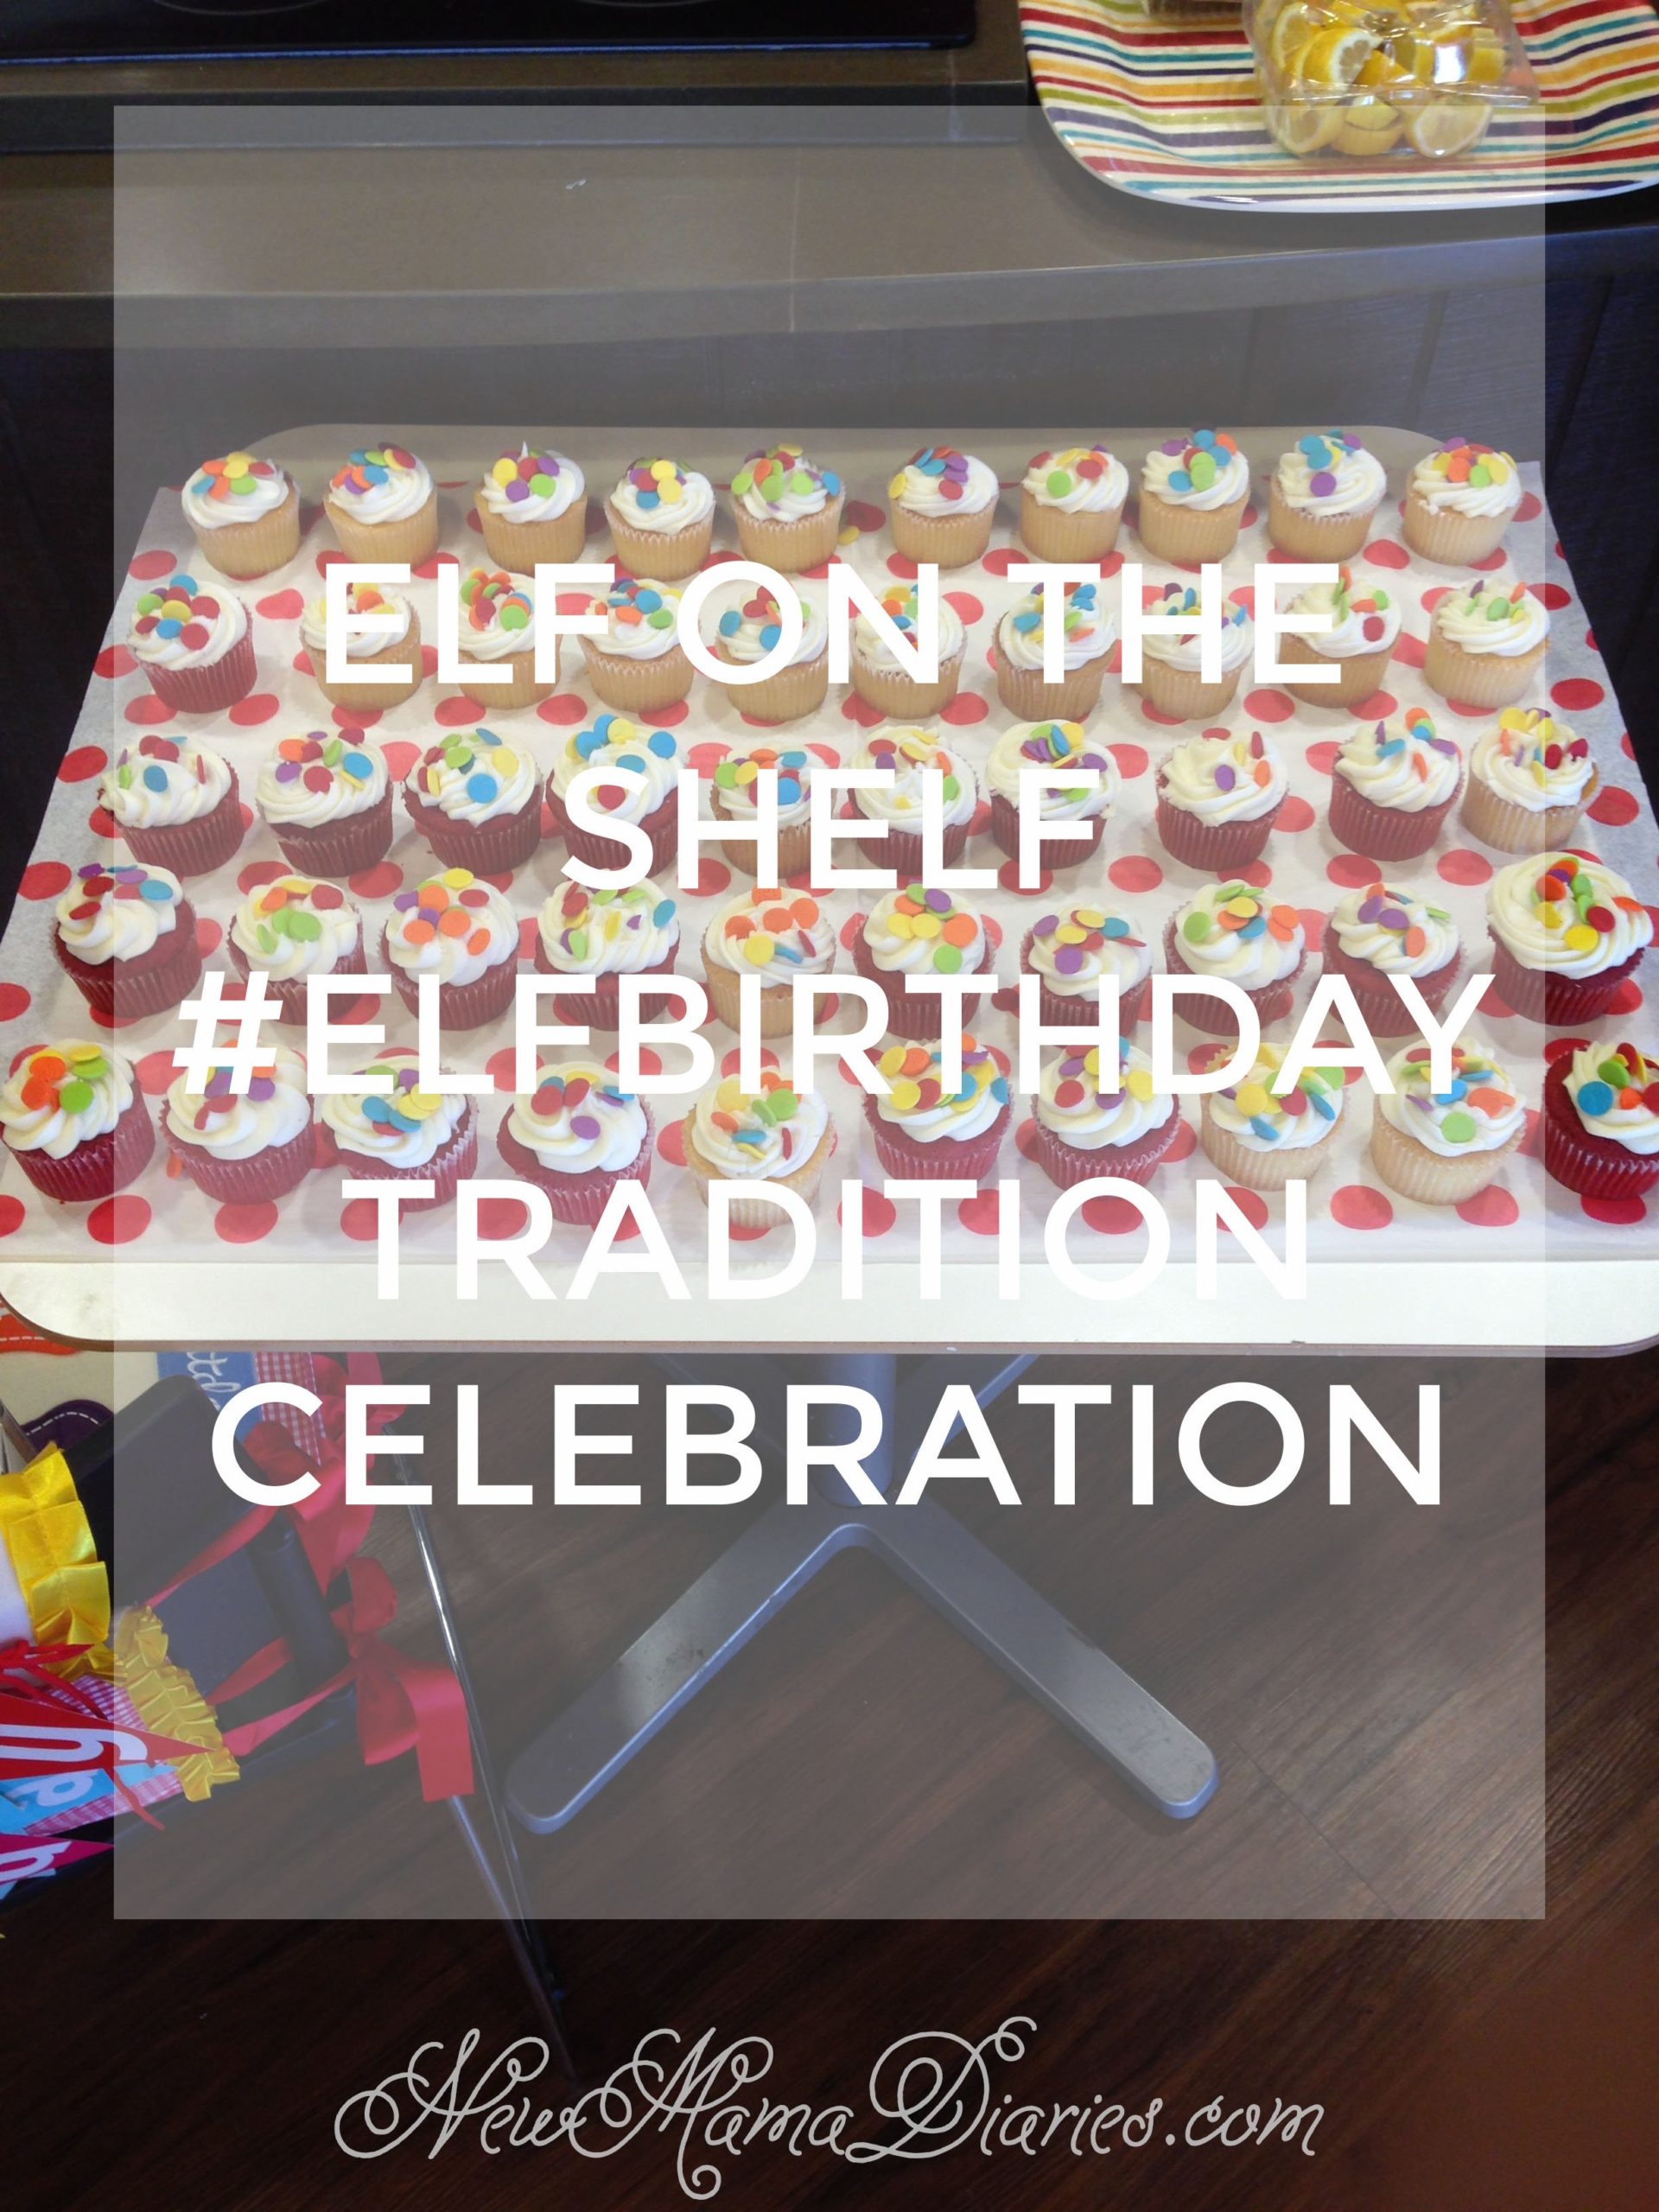 It Was a Cupcake of a Day #ElfBirthday Tradition Celebration | NewMamaDiaries.com